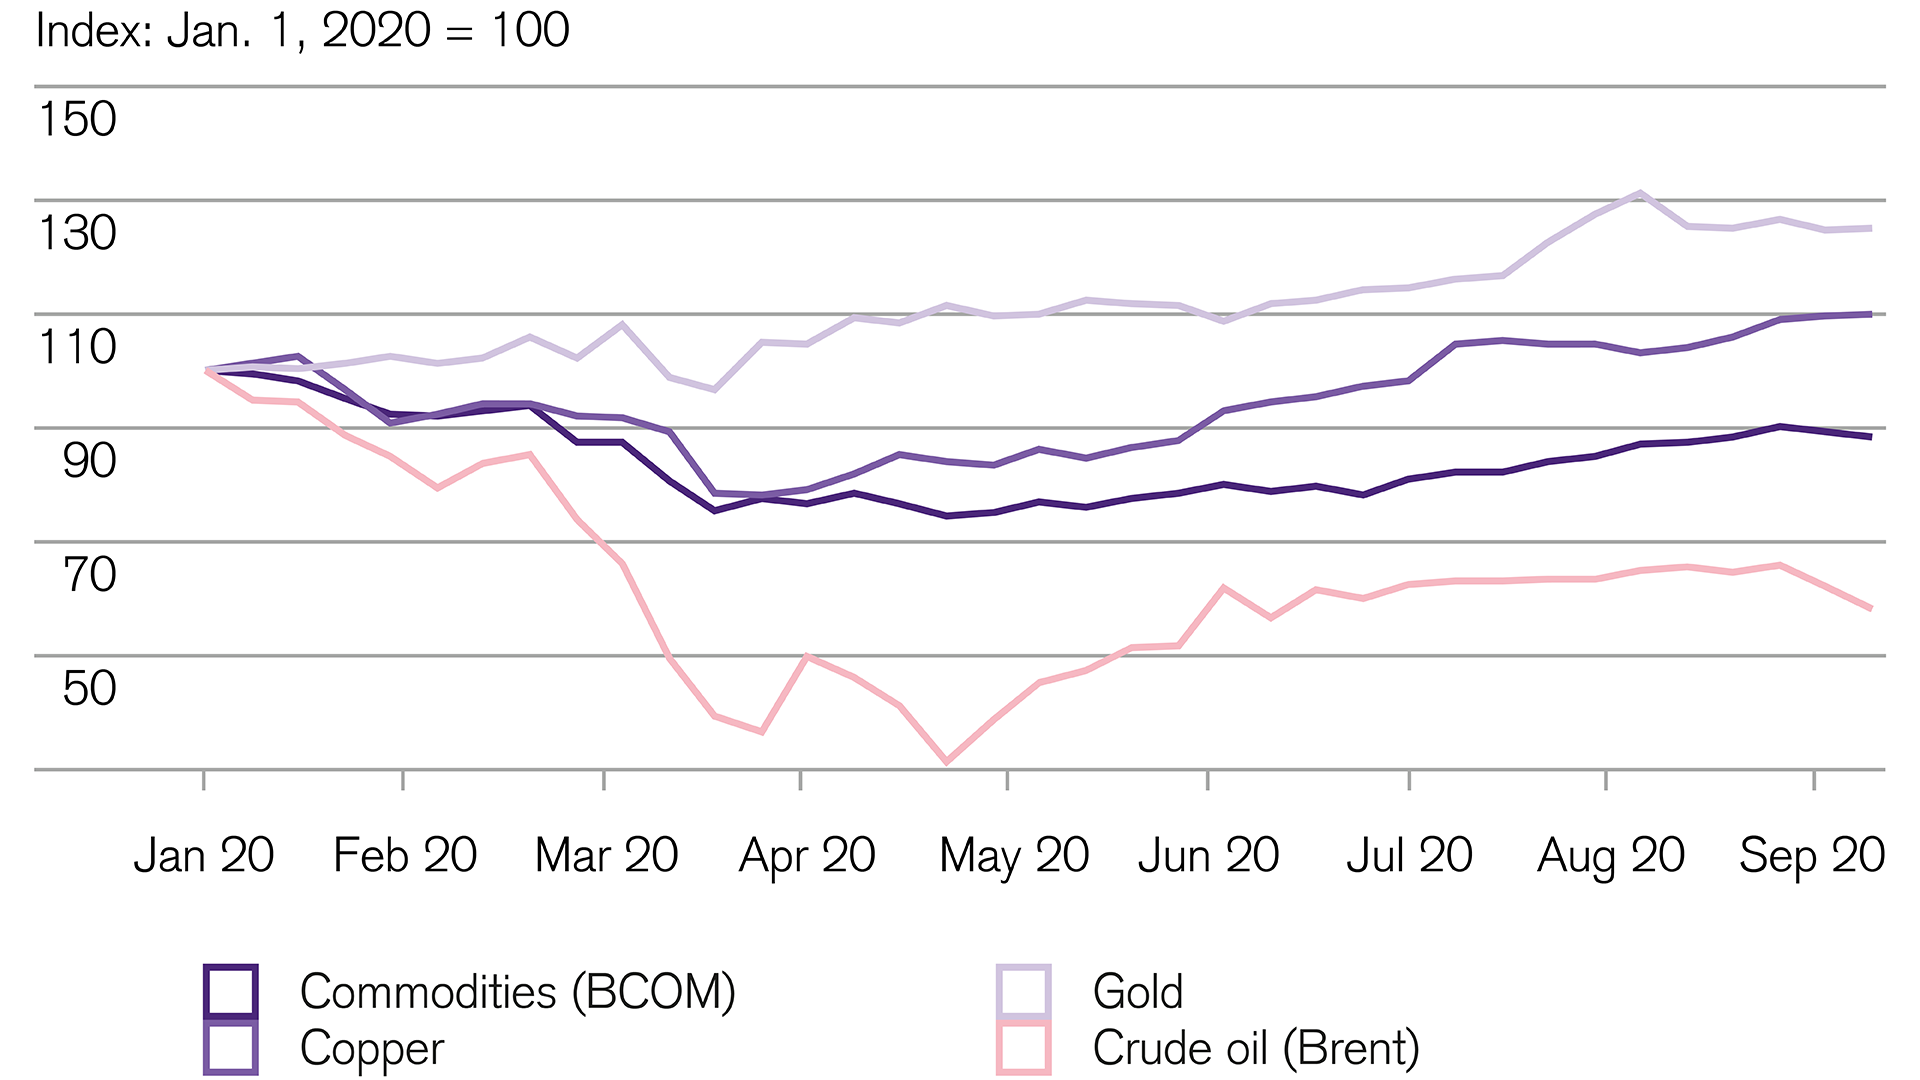 Investing: Performance of commodities is a mixed bag